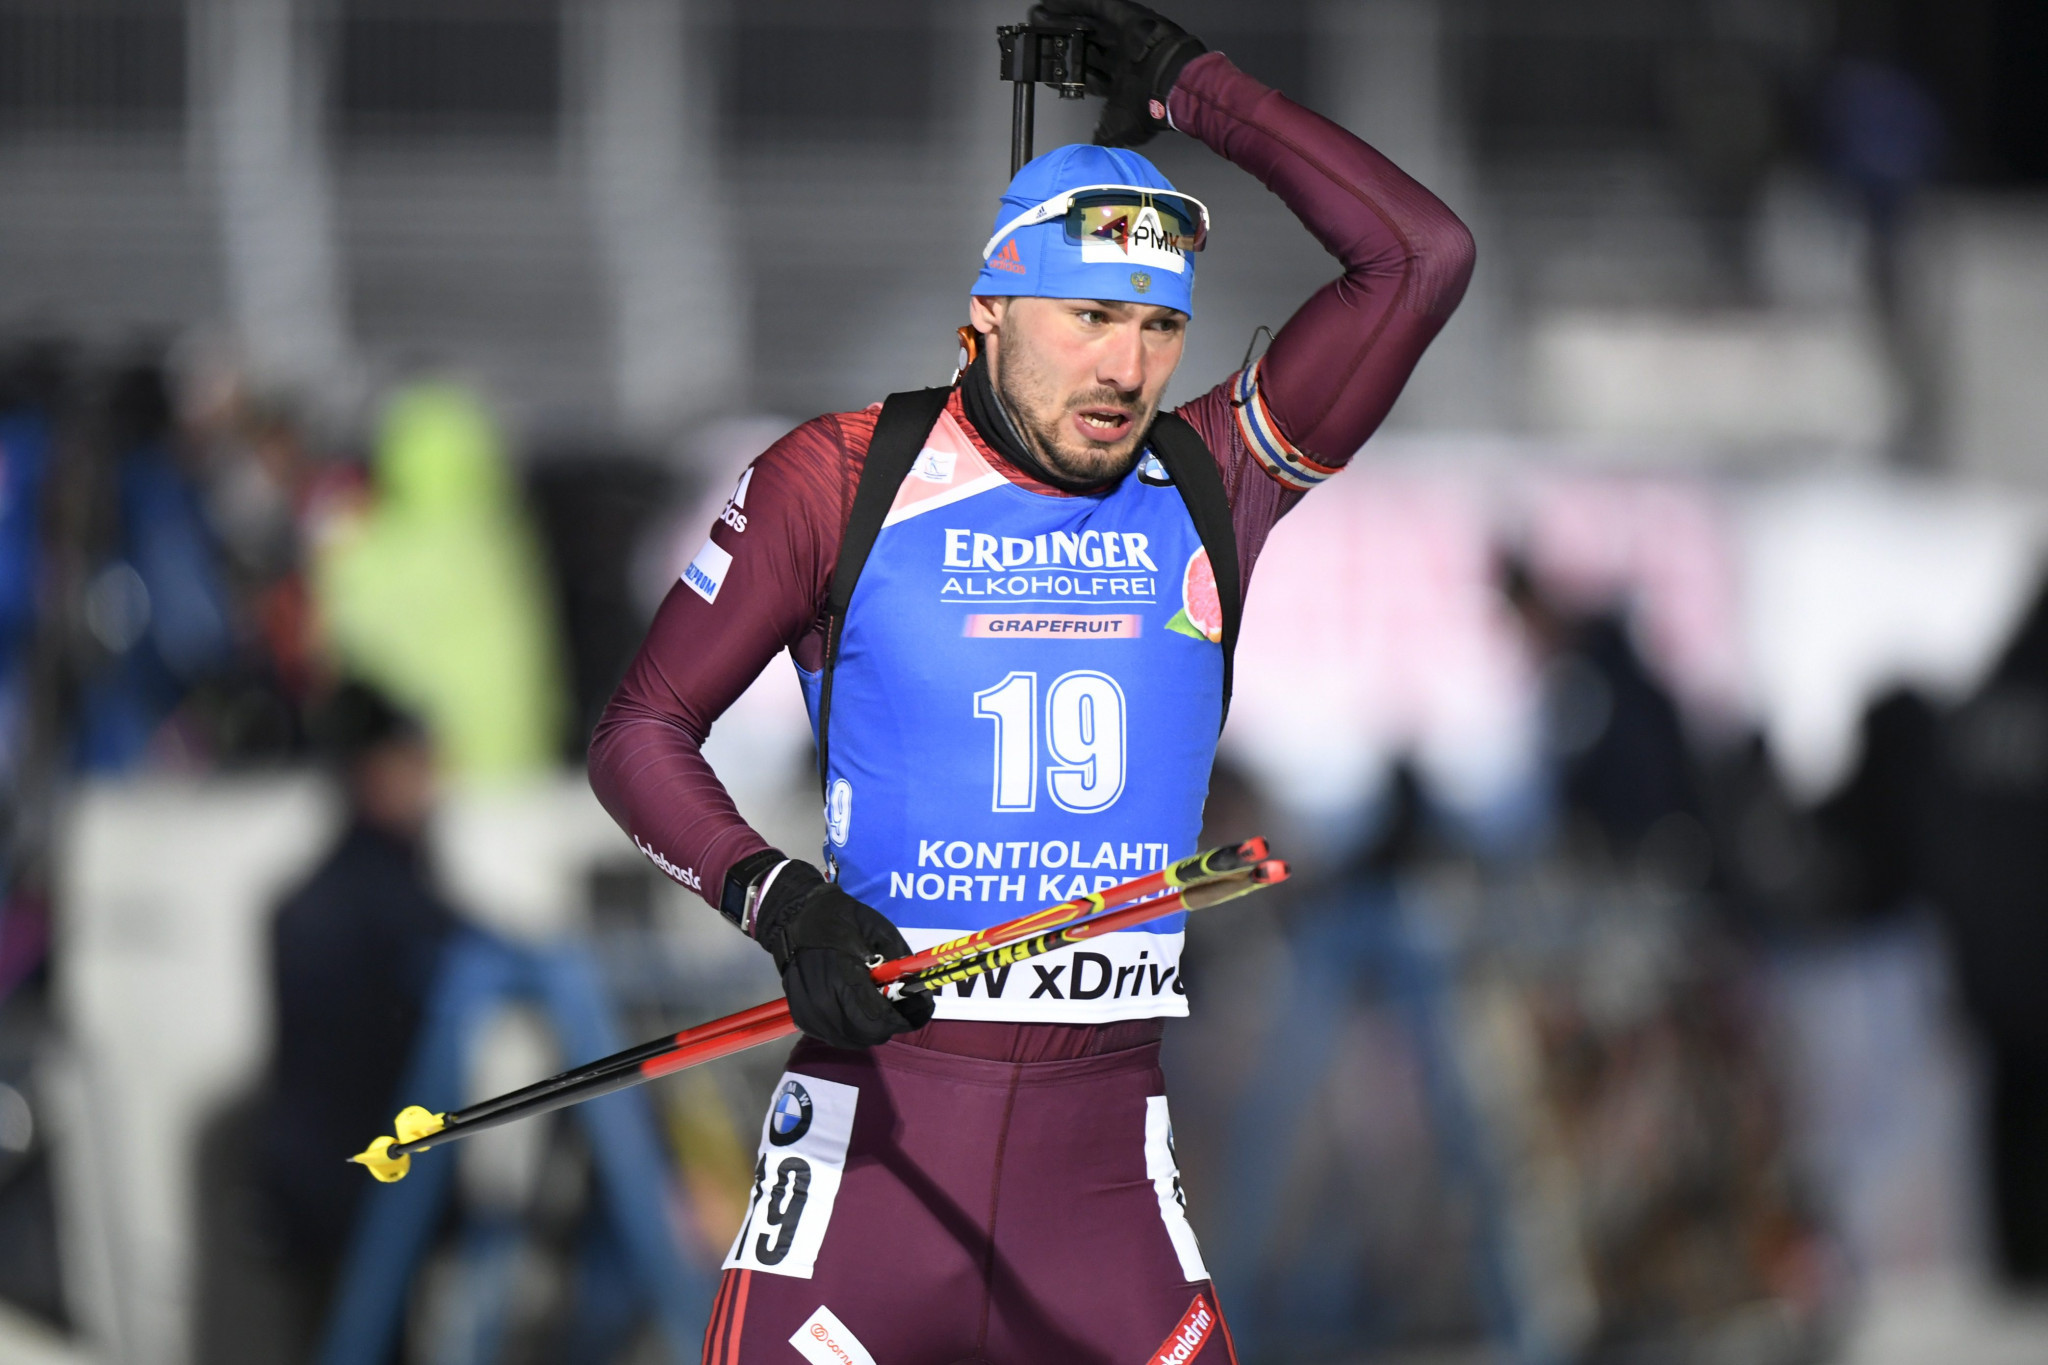 Five Russian biathletes including Anton Shipulin are under investigation for anti-doping violations at last year's World Championships ©Getty Images